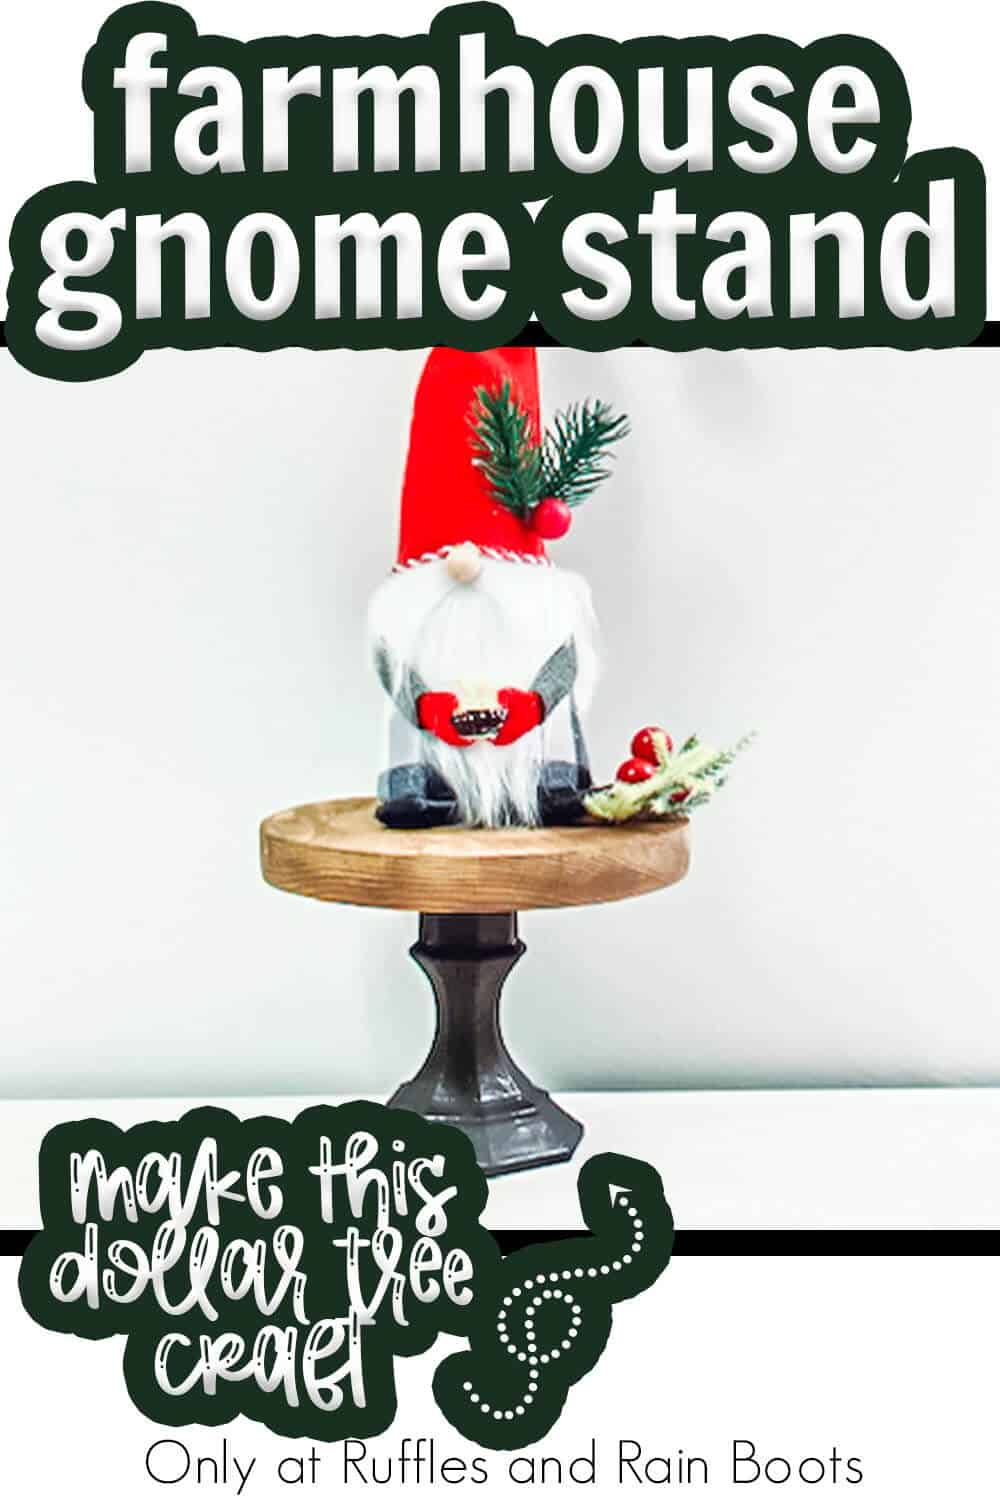 dollar store craft farmhouse gnome stand with text which reads farmhouse gnome stand make this dollar tree craft